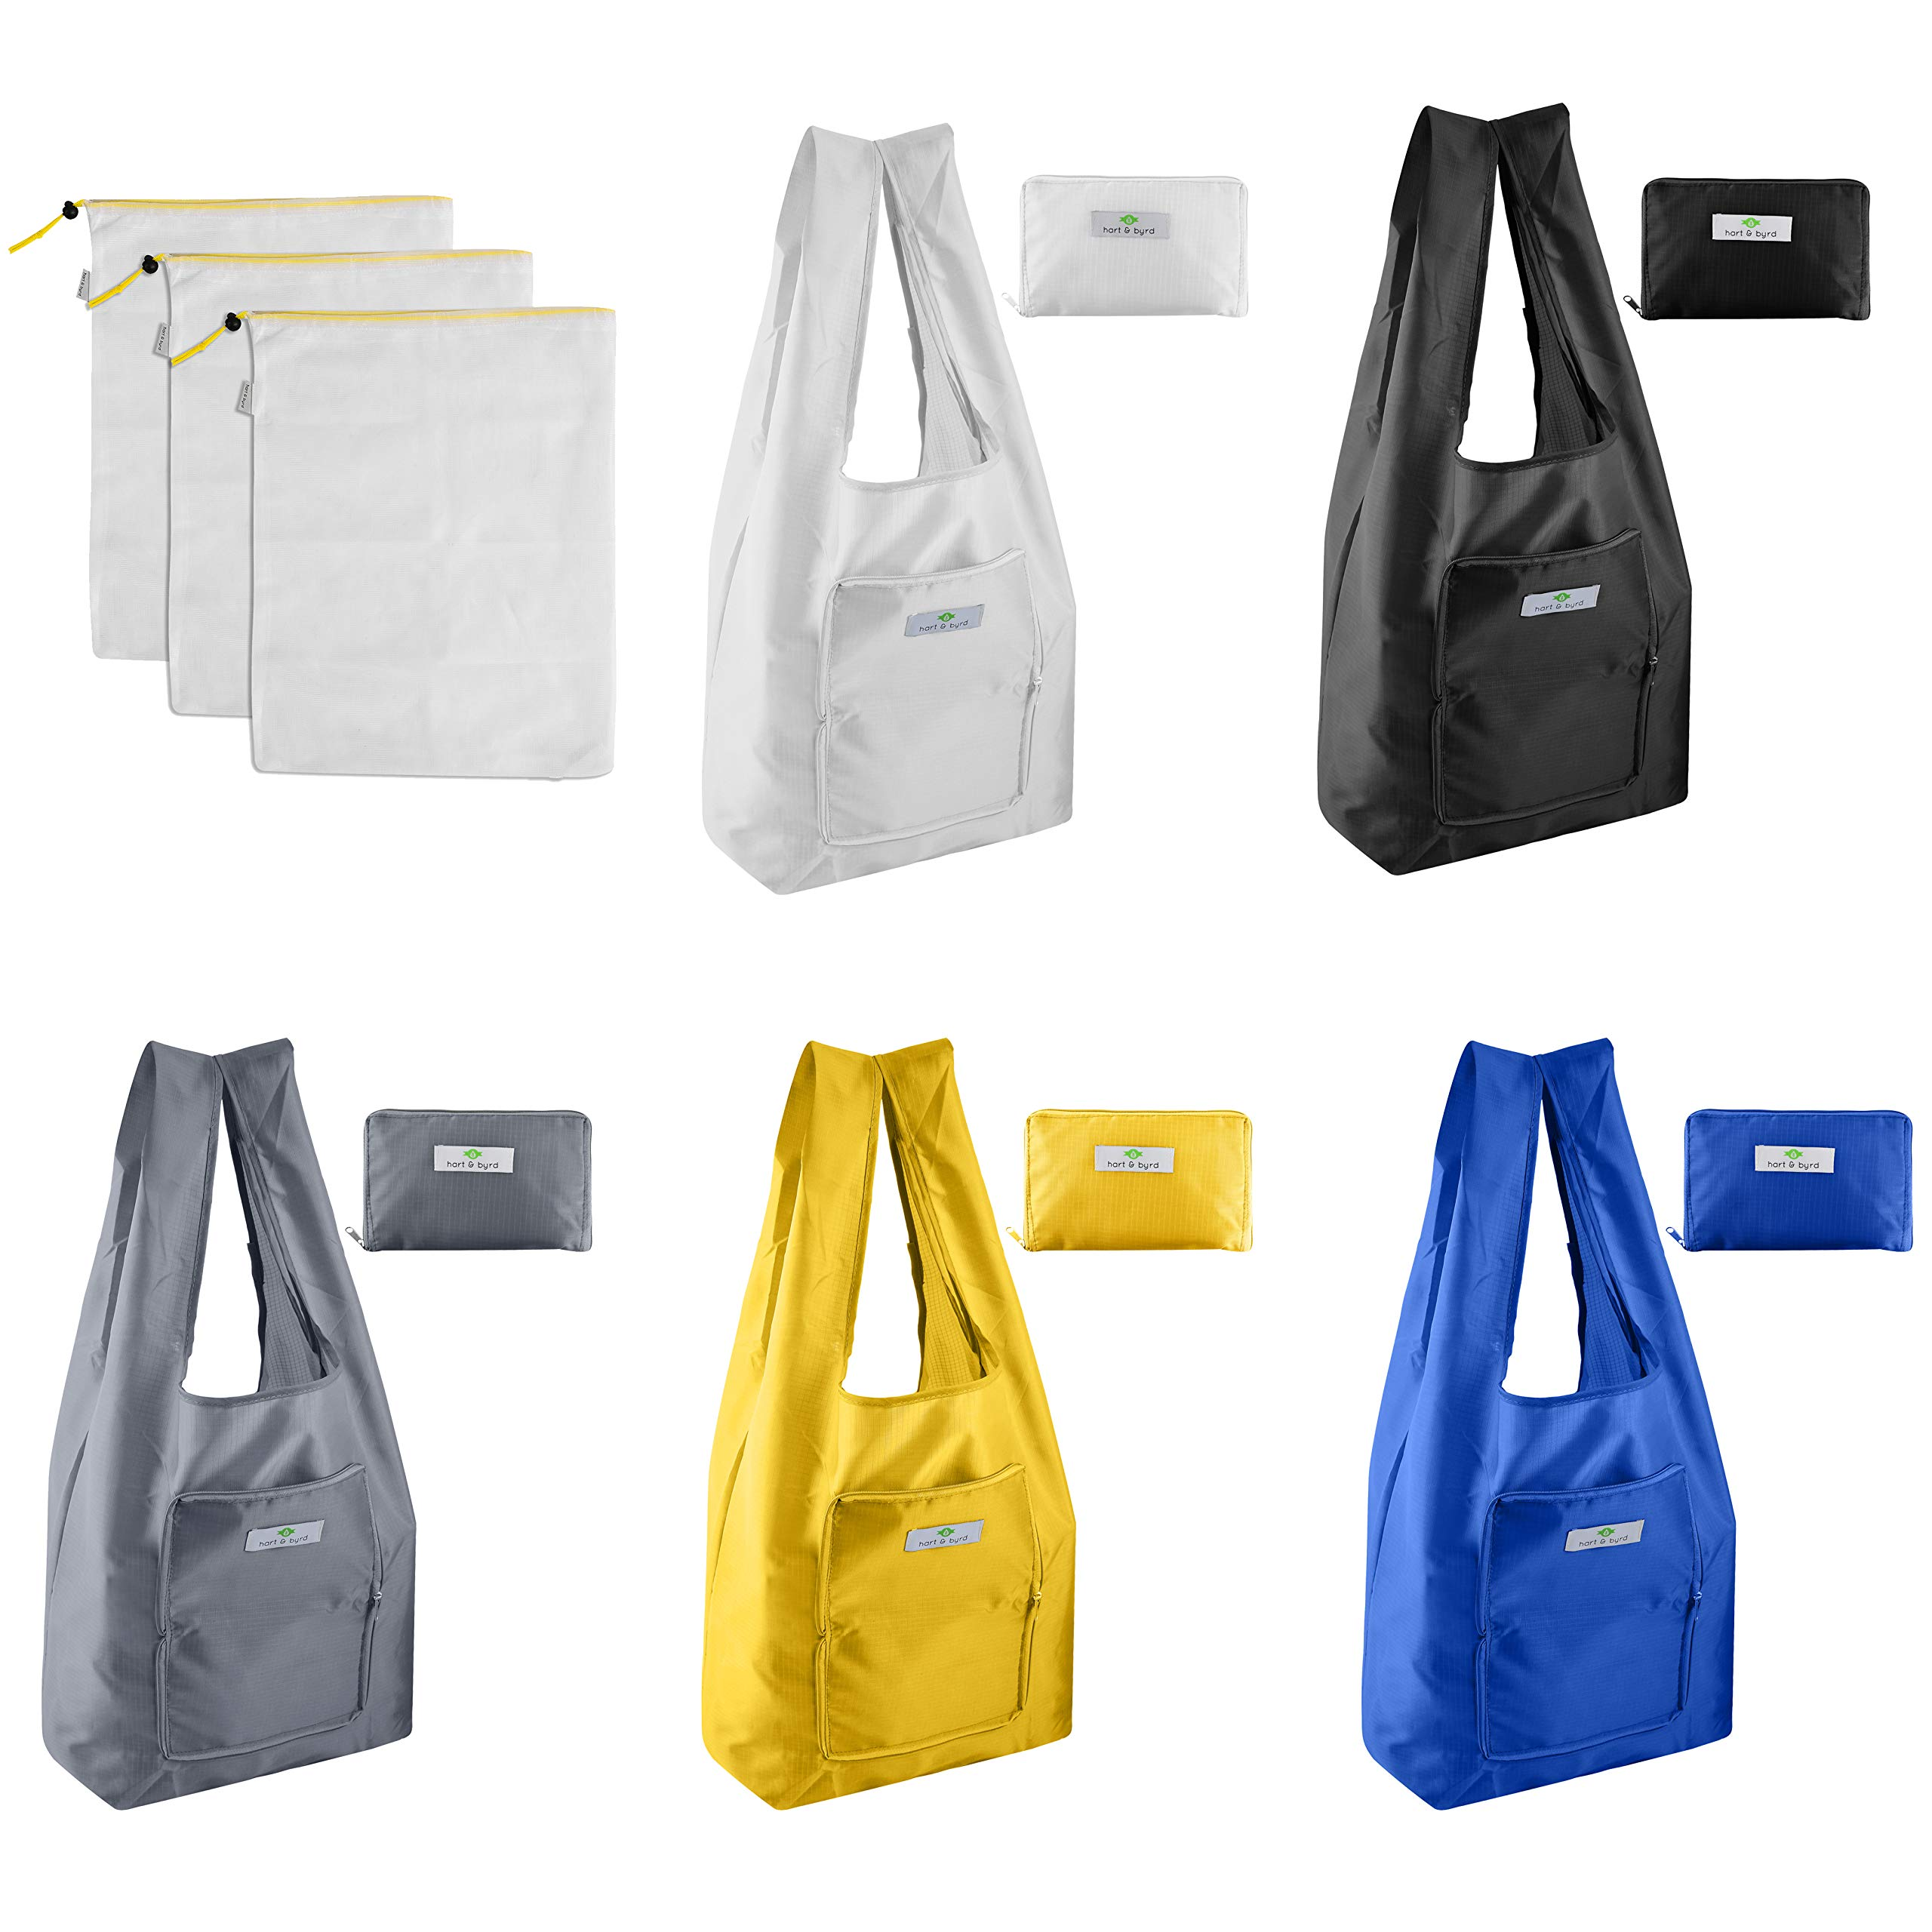 Set of 5 Reusable Zippered Grocery Shopping Bags With 3 Large Mesh Produce Bags For Sustainable Shopping | Lightweight and Sturdy Washable Nylon In 5 Colors Foldable Into Attached Pouch